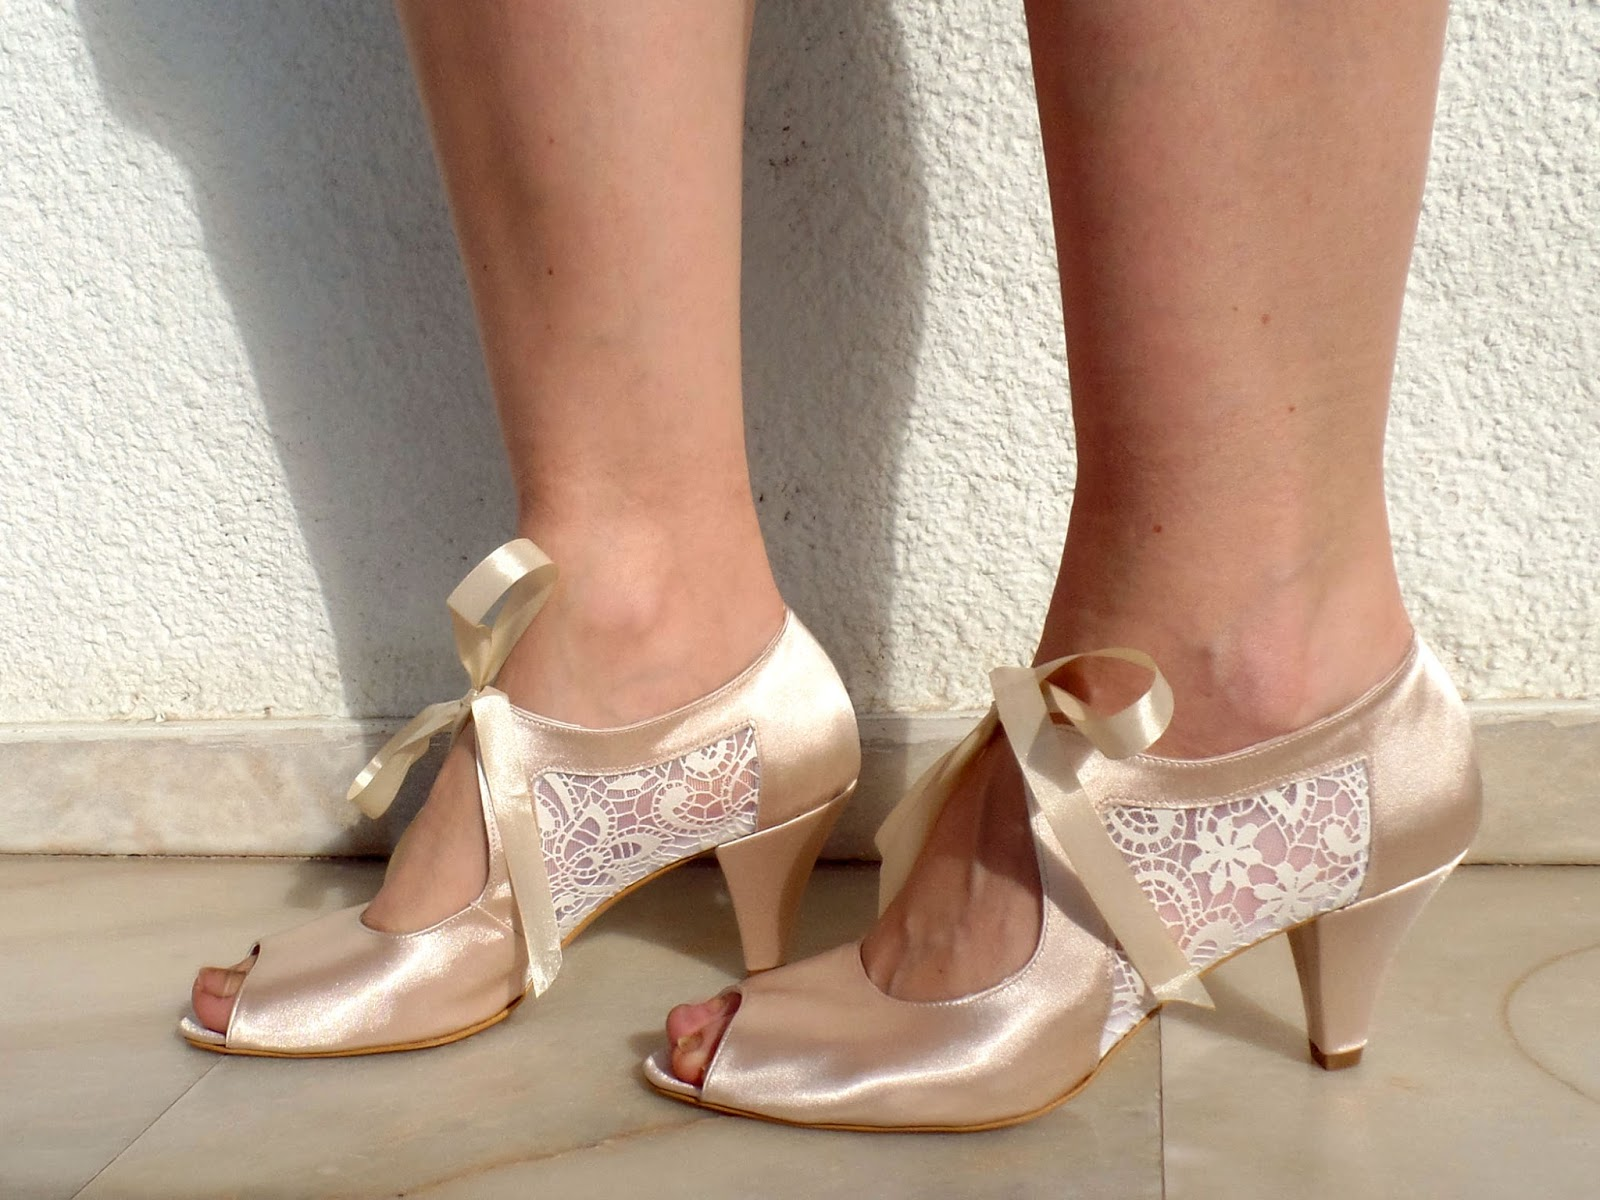 a55adfbcbe7 Better Champagne Colored Shoes Options - Totaltravel.US